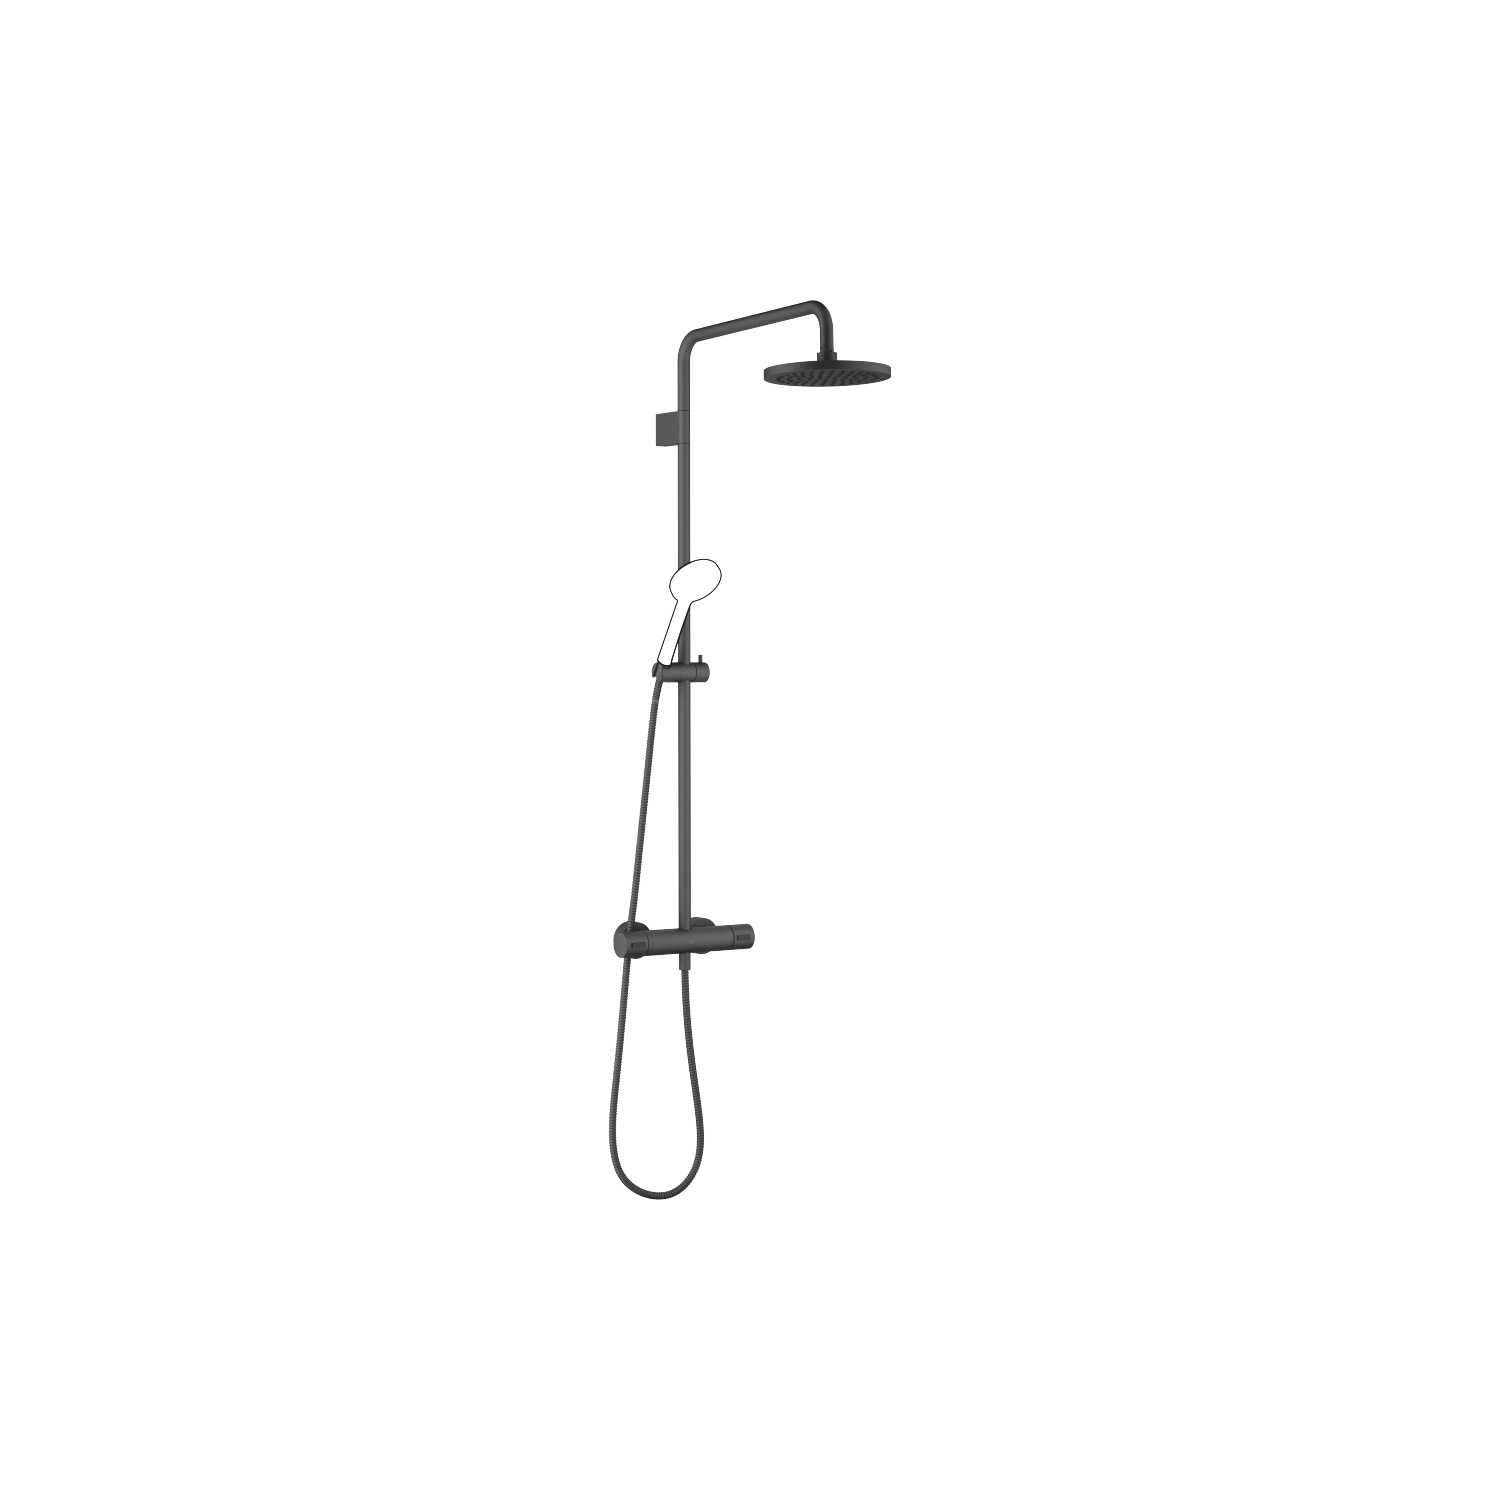 Showerpipe with shower thermostat without hand shower - matt black